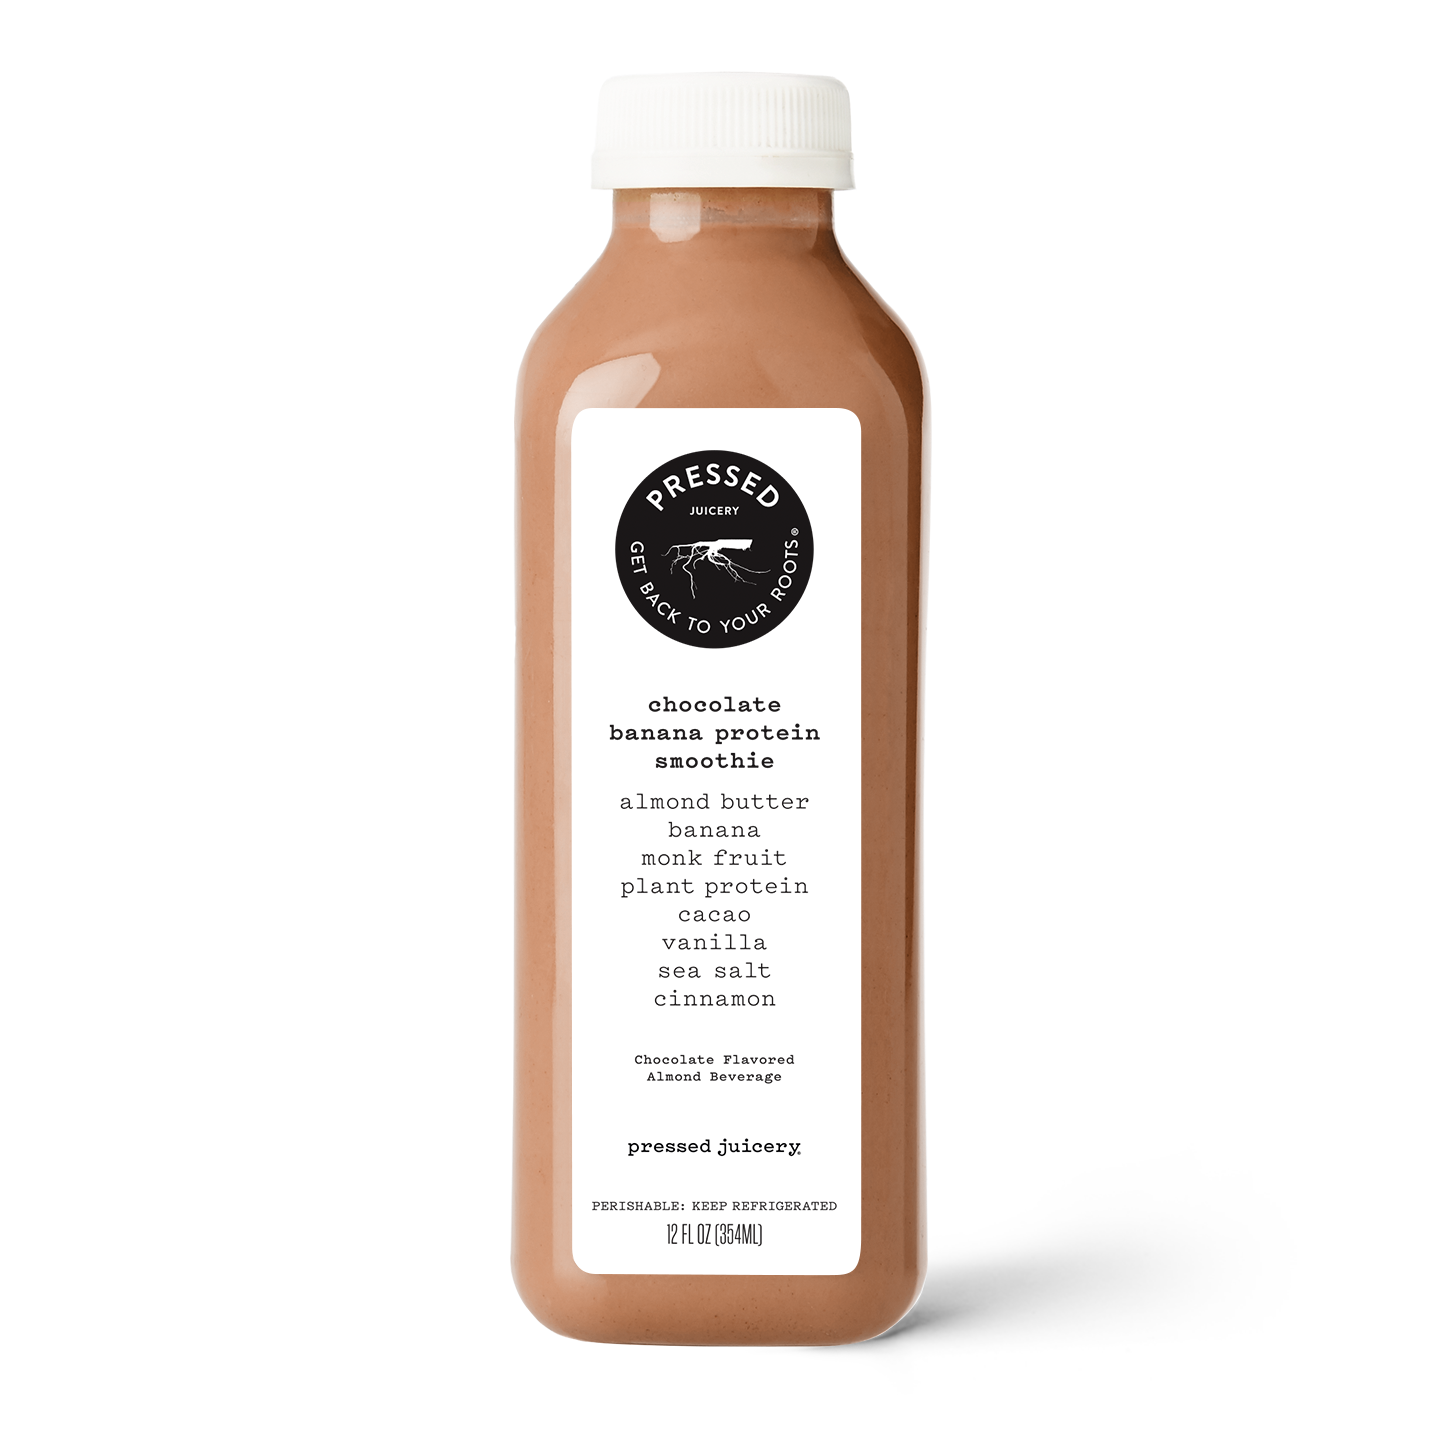 12oz Chocolate Banana Protein Smoothie product image